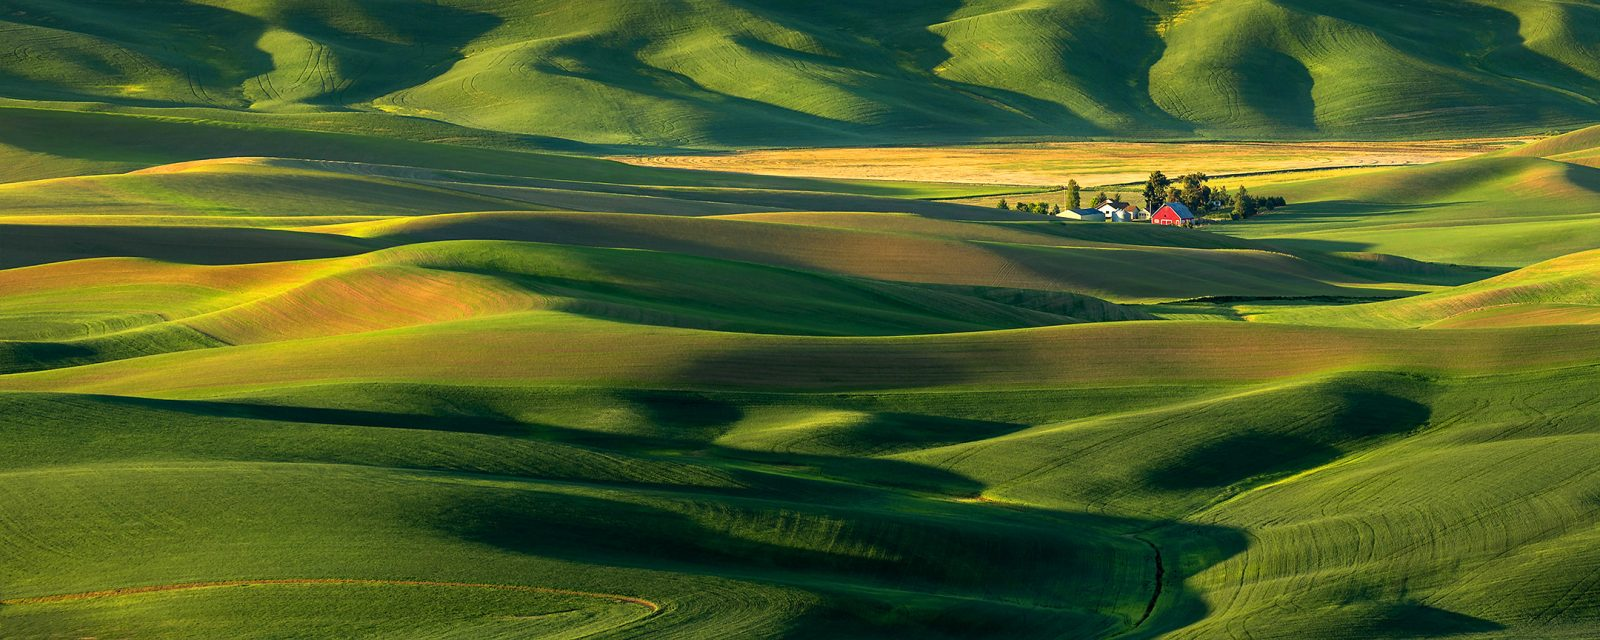 The Palouse Countryside